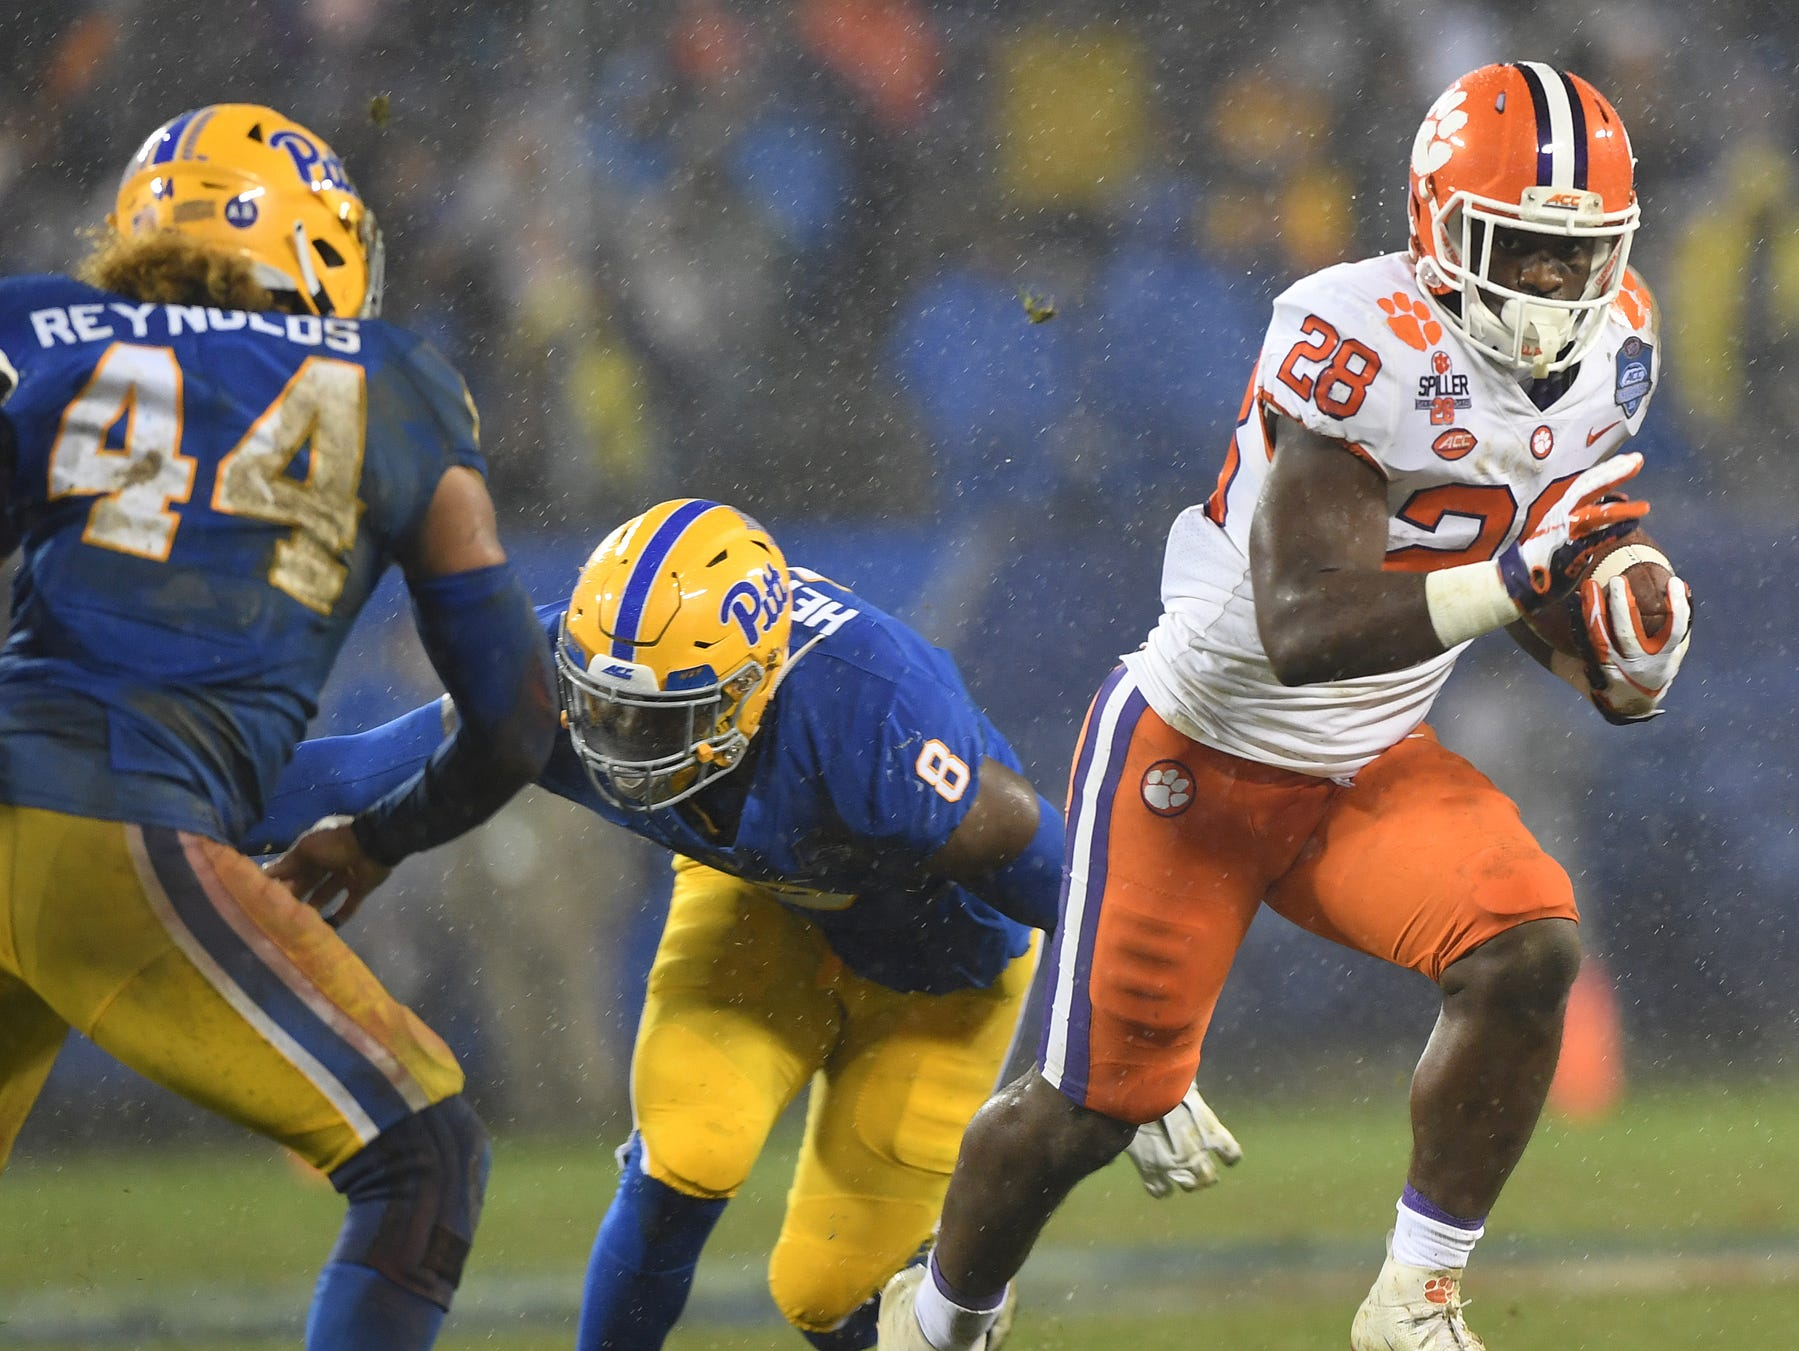 Clemson running back Tavien Feaster (28) carries against Pittsburgh during the 2nd quarter of the Dr. Pepper ACC Championship at Bank of America Stadium in Charlotte, N.C. Saturday, December 1, 2018.